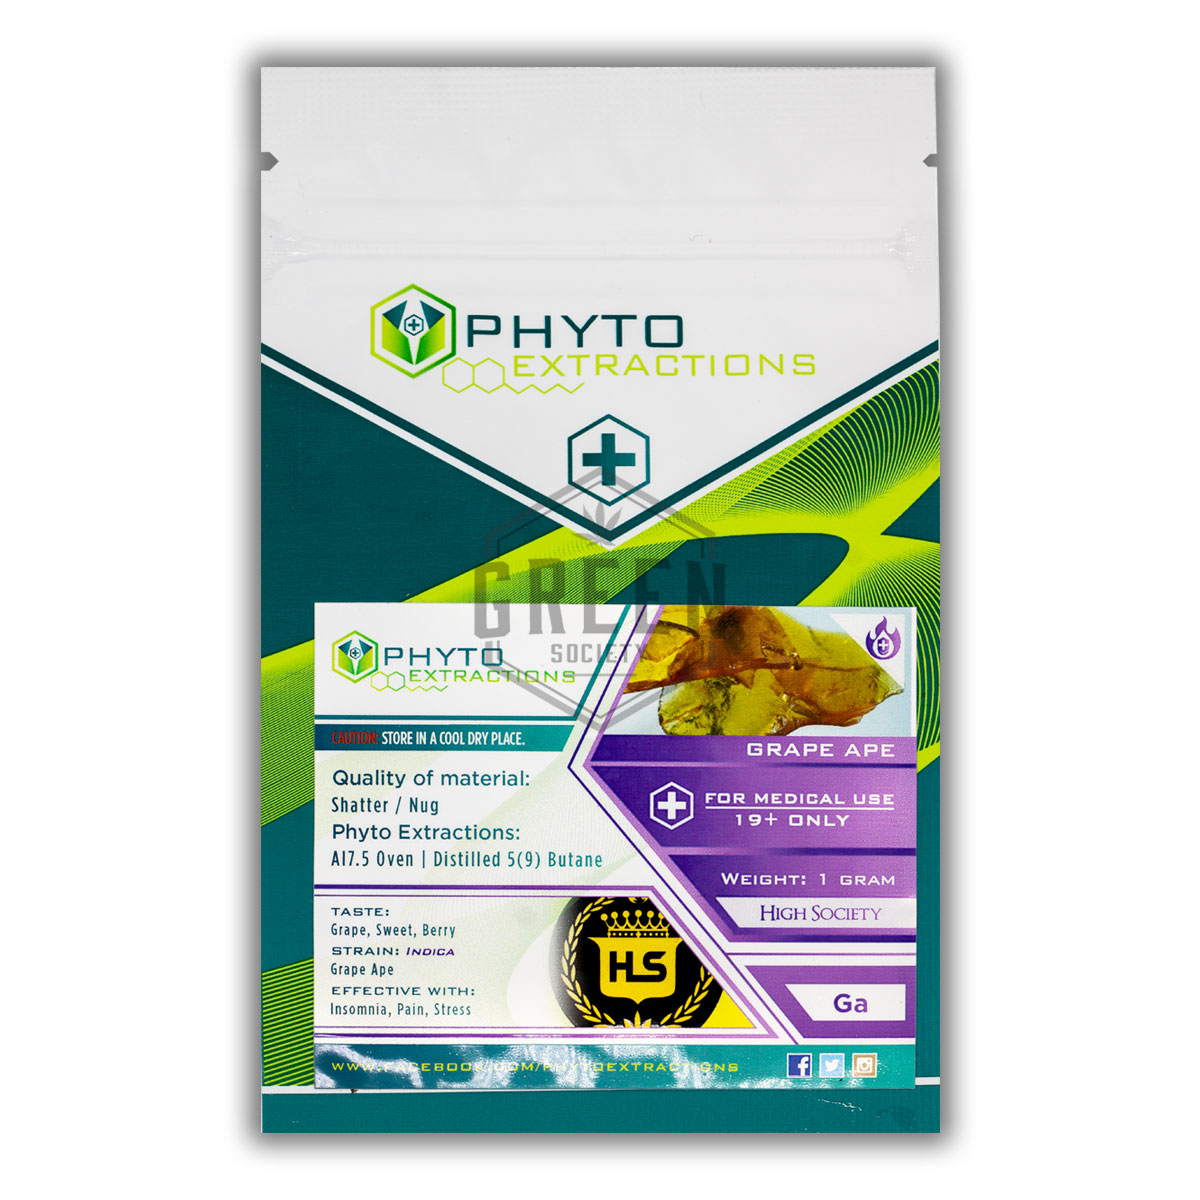 Phyto Extractions Grape Ape Shatter by Green Society - Image © 2019 Green Society. All Rights Reserved.